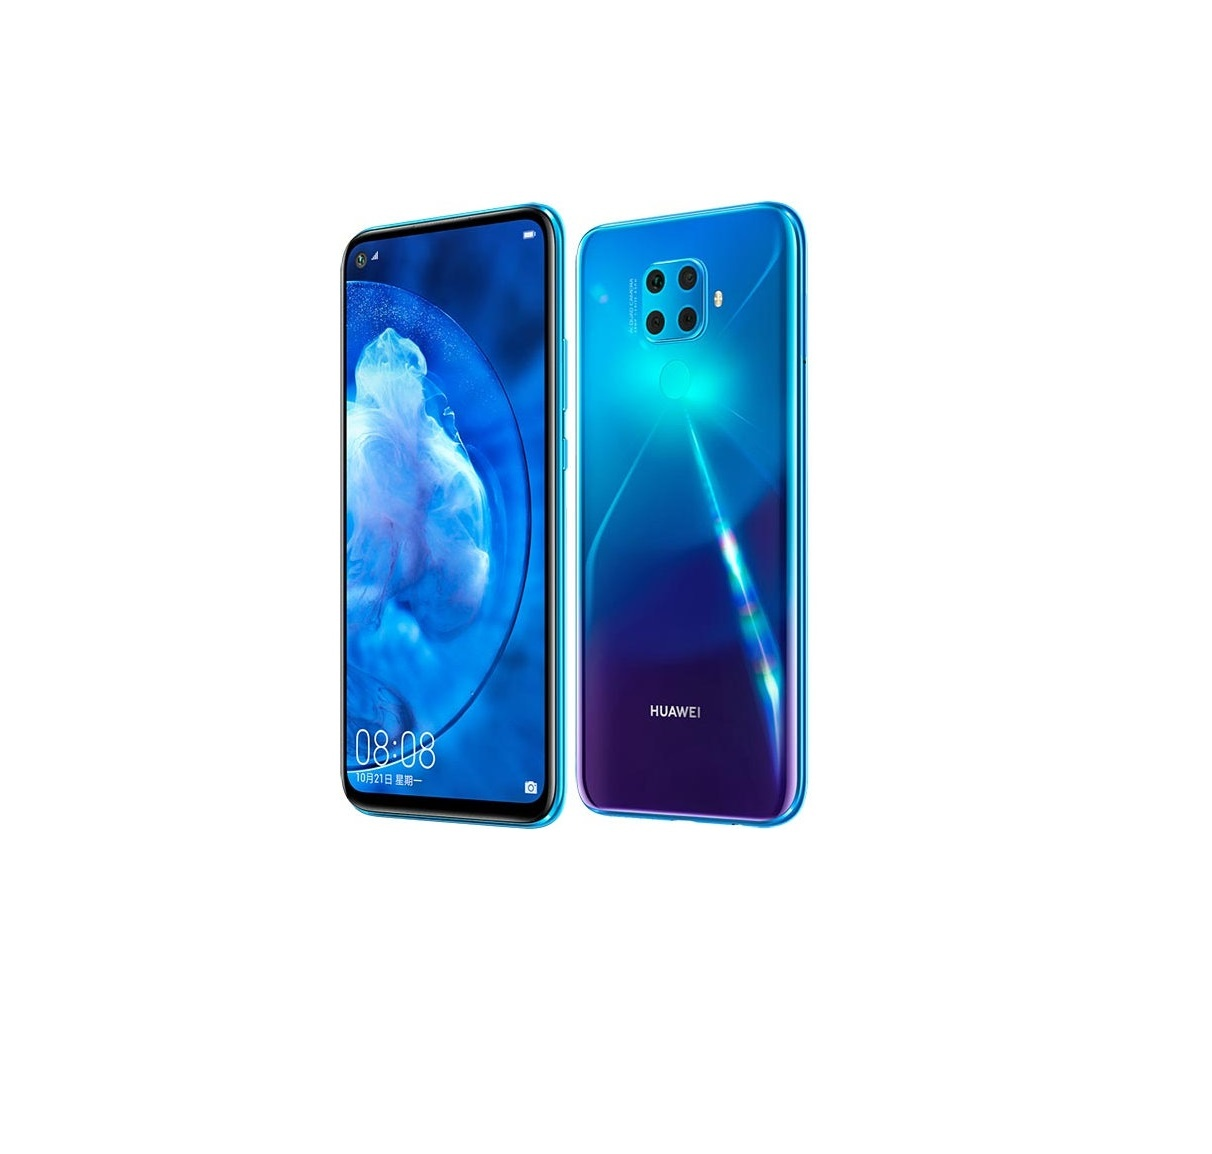 Huawei Nova 5z - Full Specifications and Price